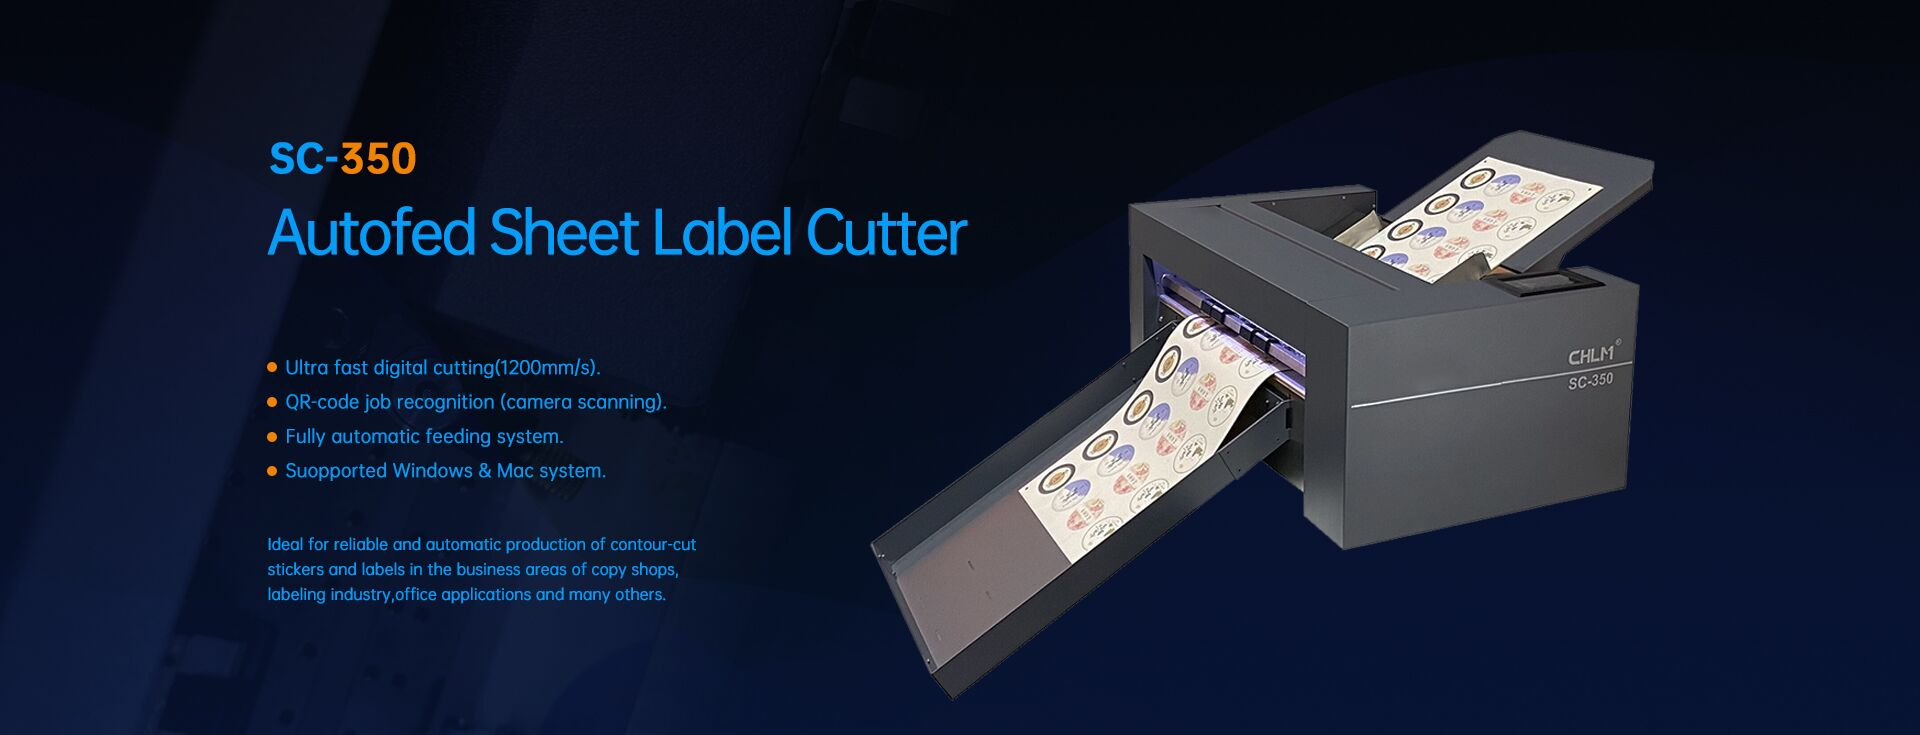 digital flatbed cutter